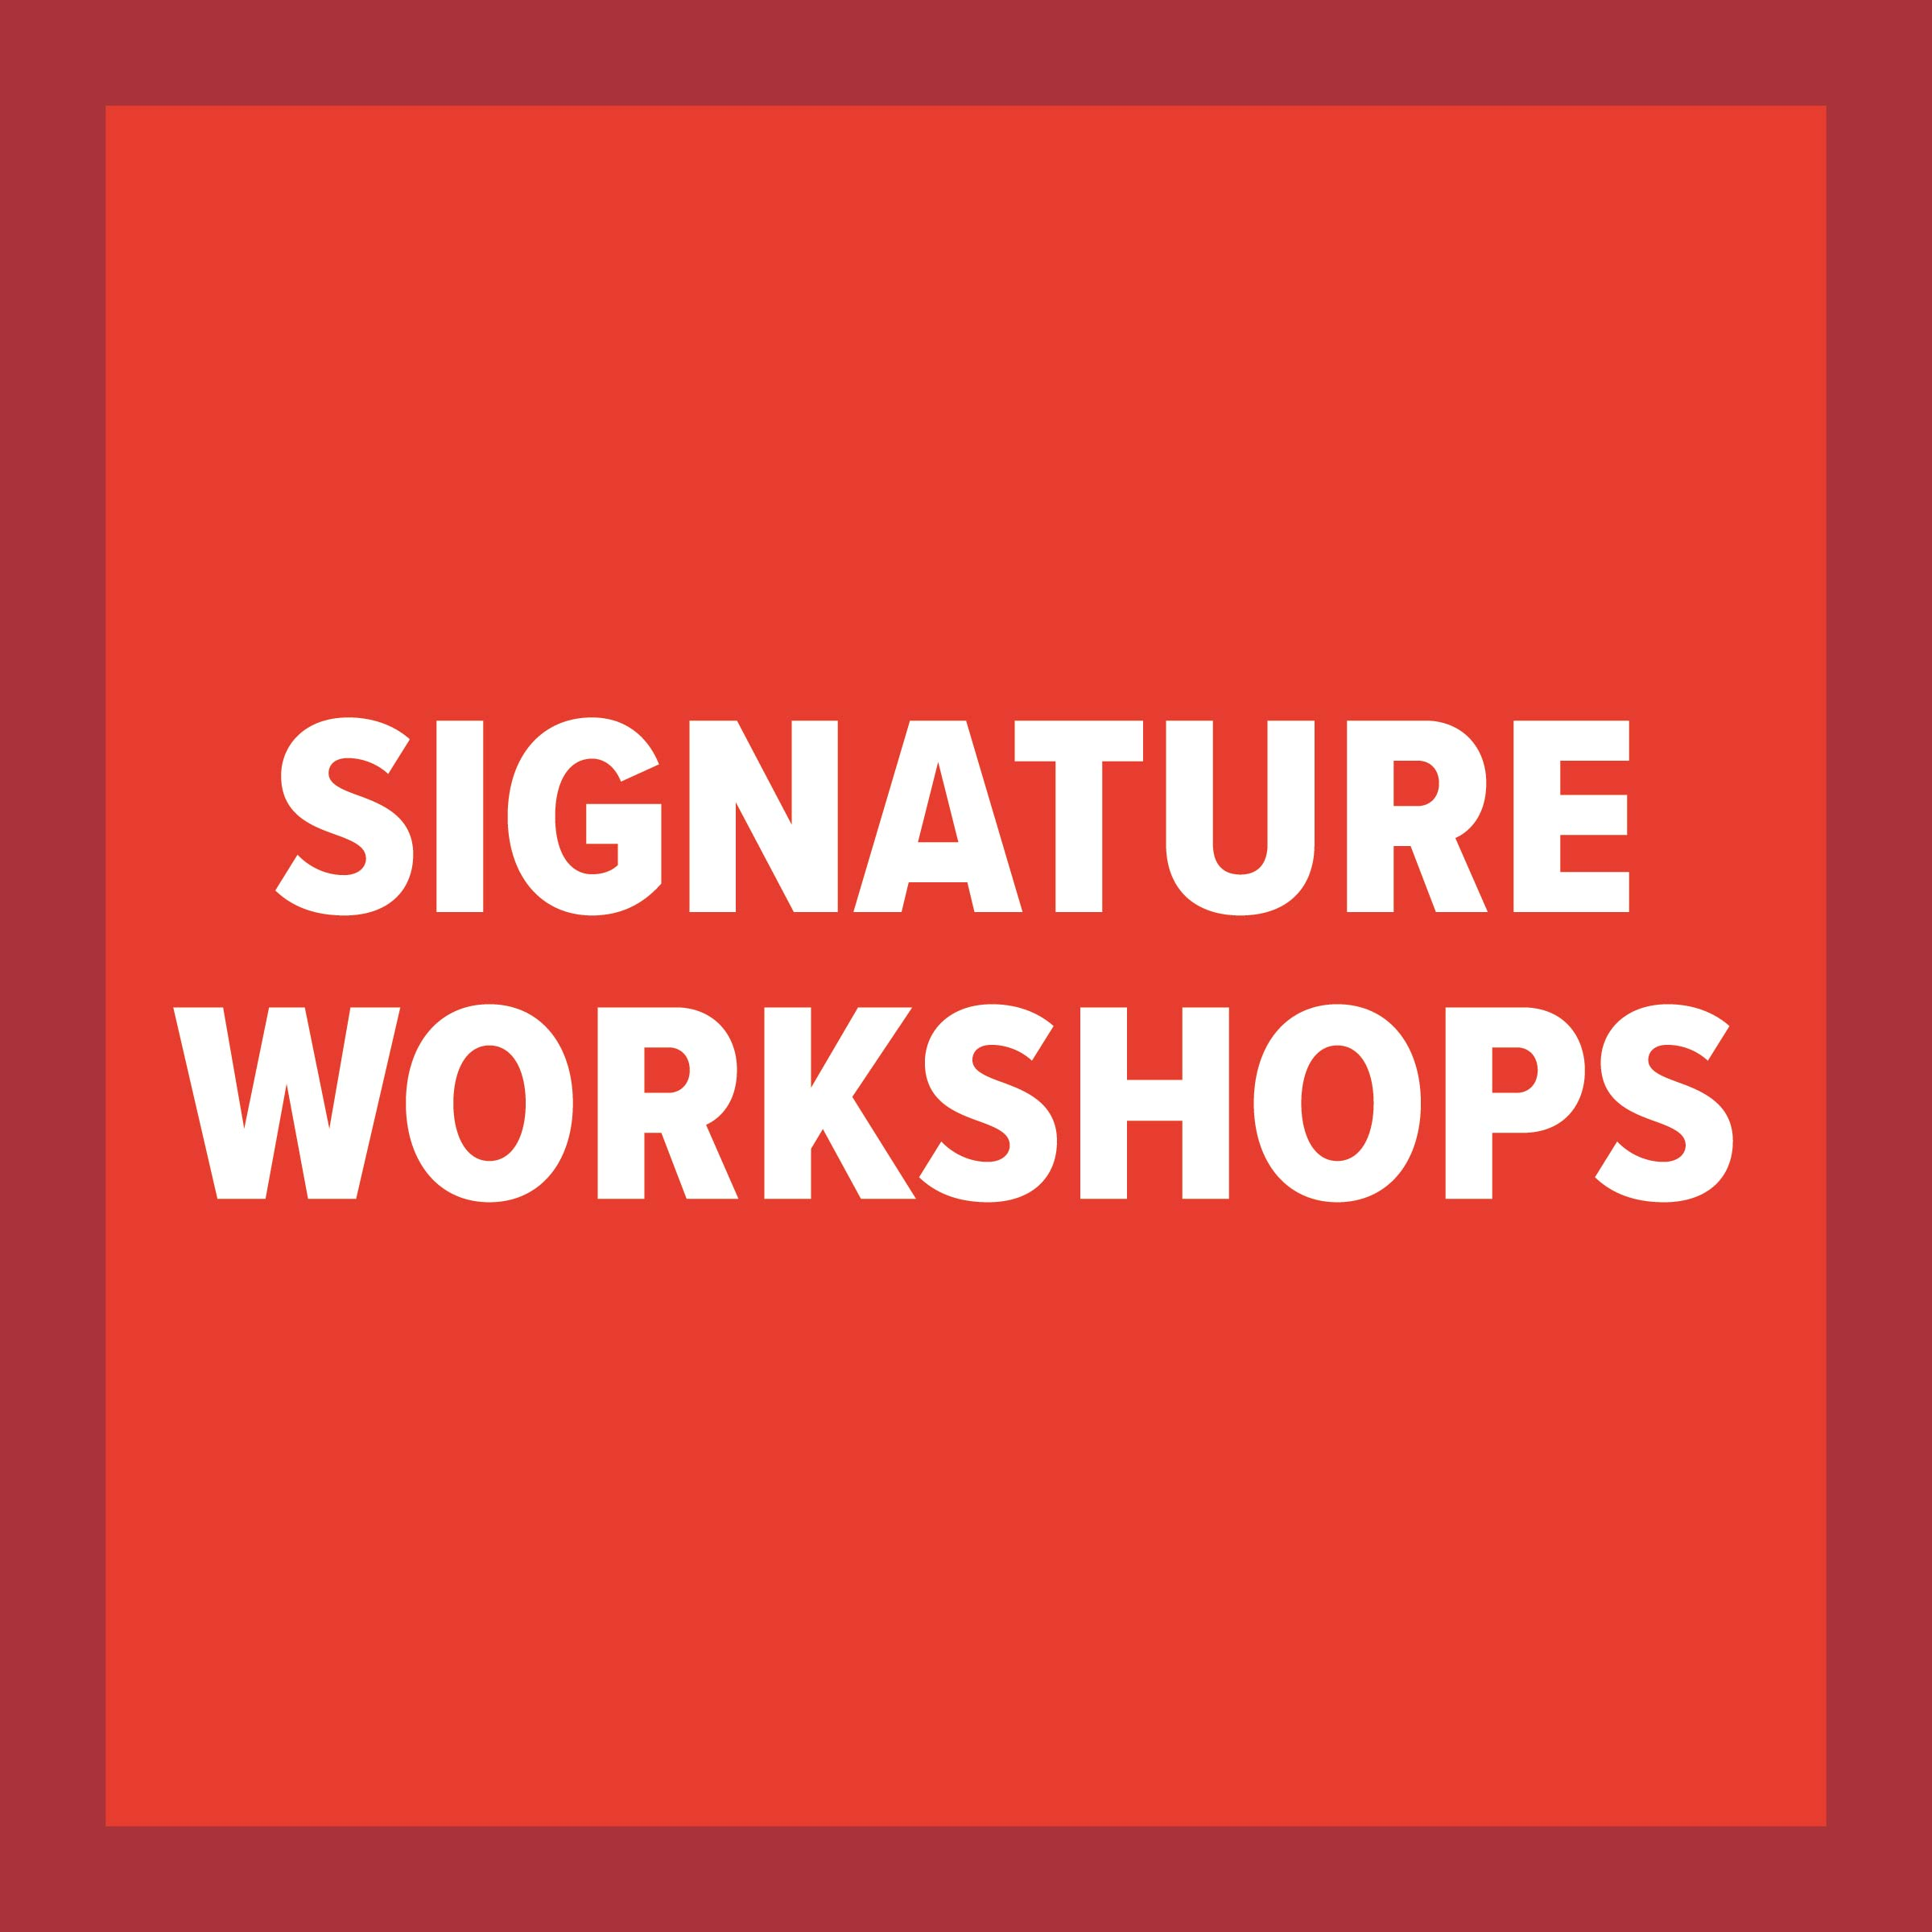 SignatureWorkshops-01